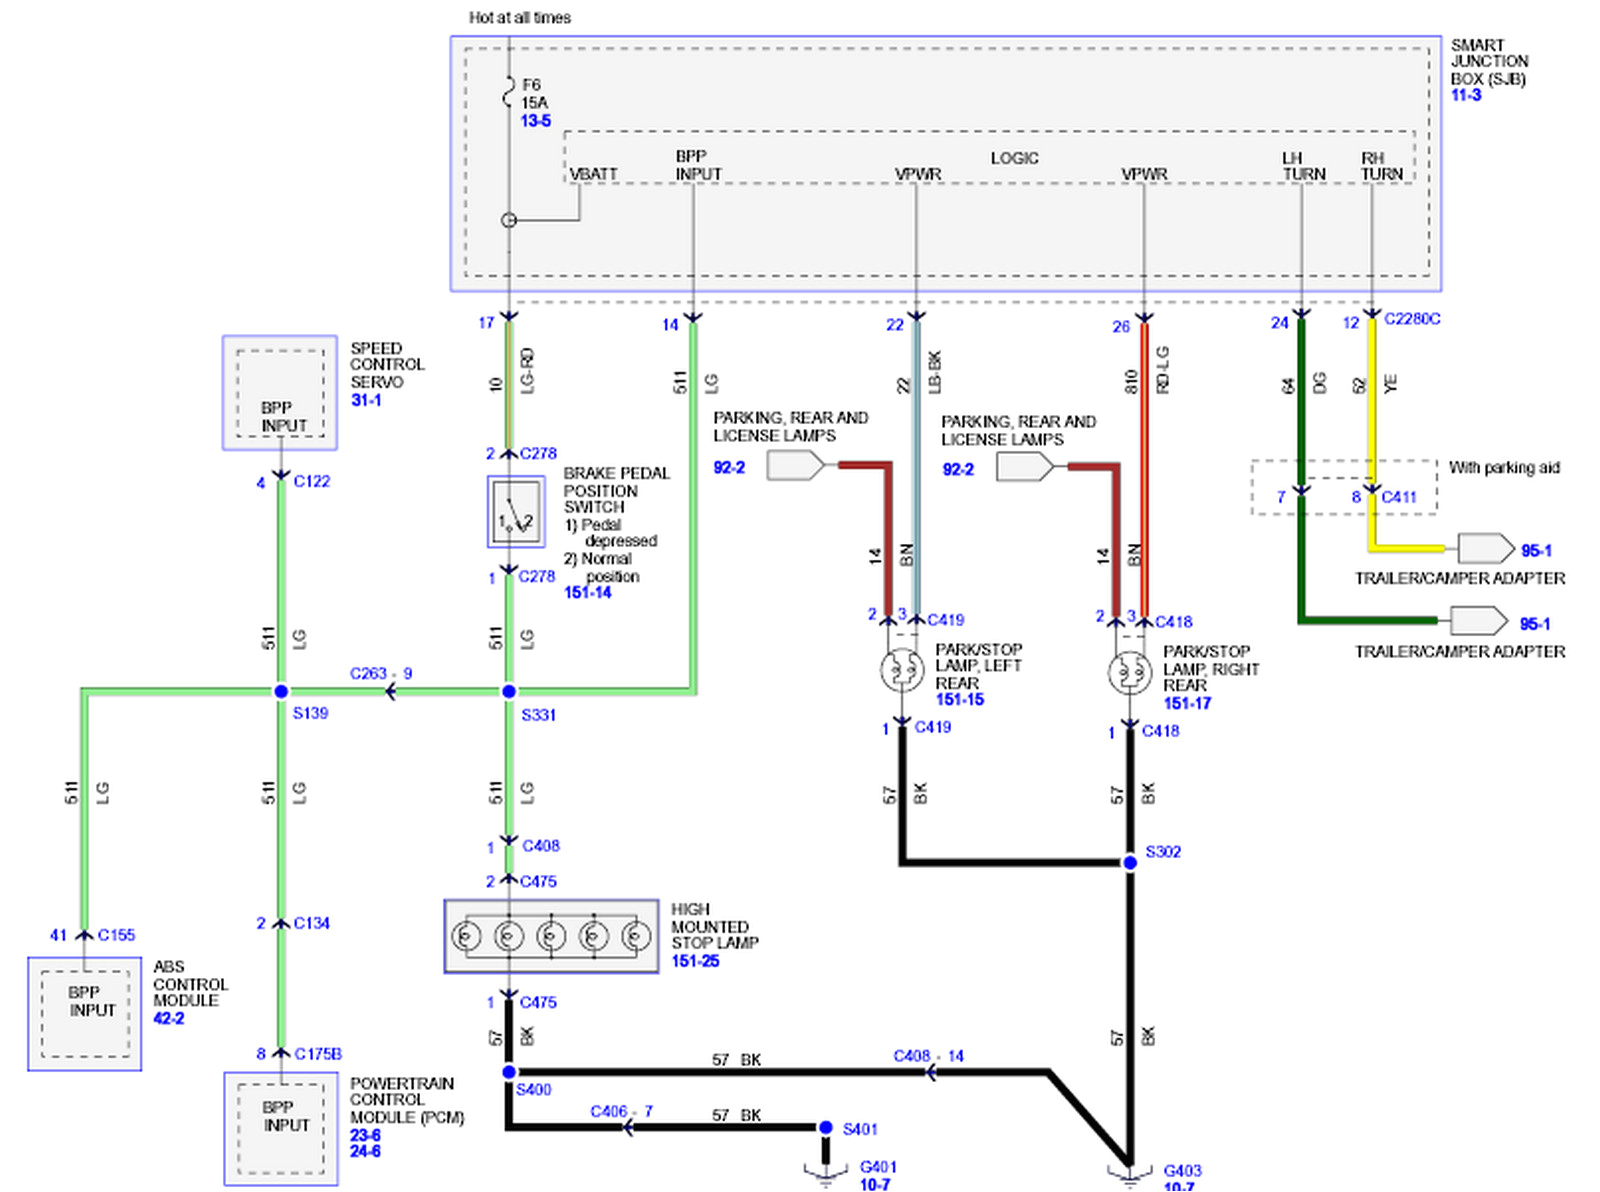 2009 Ford Escape Wiring Diagram Wiring Diagrams Console A Console A Chatteriedelavalleedufelin Fr